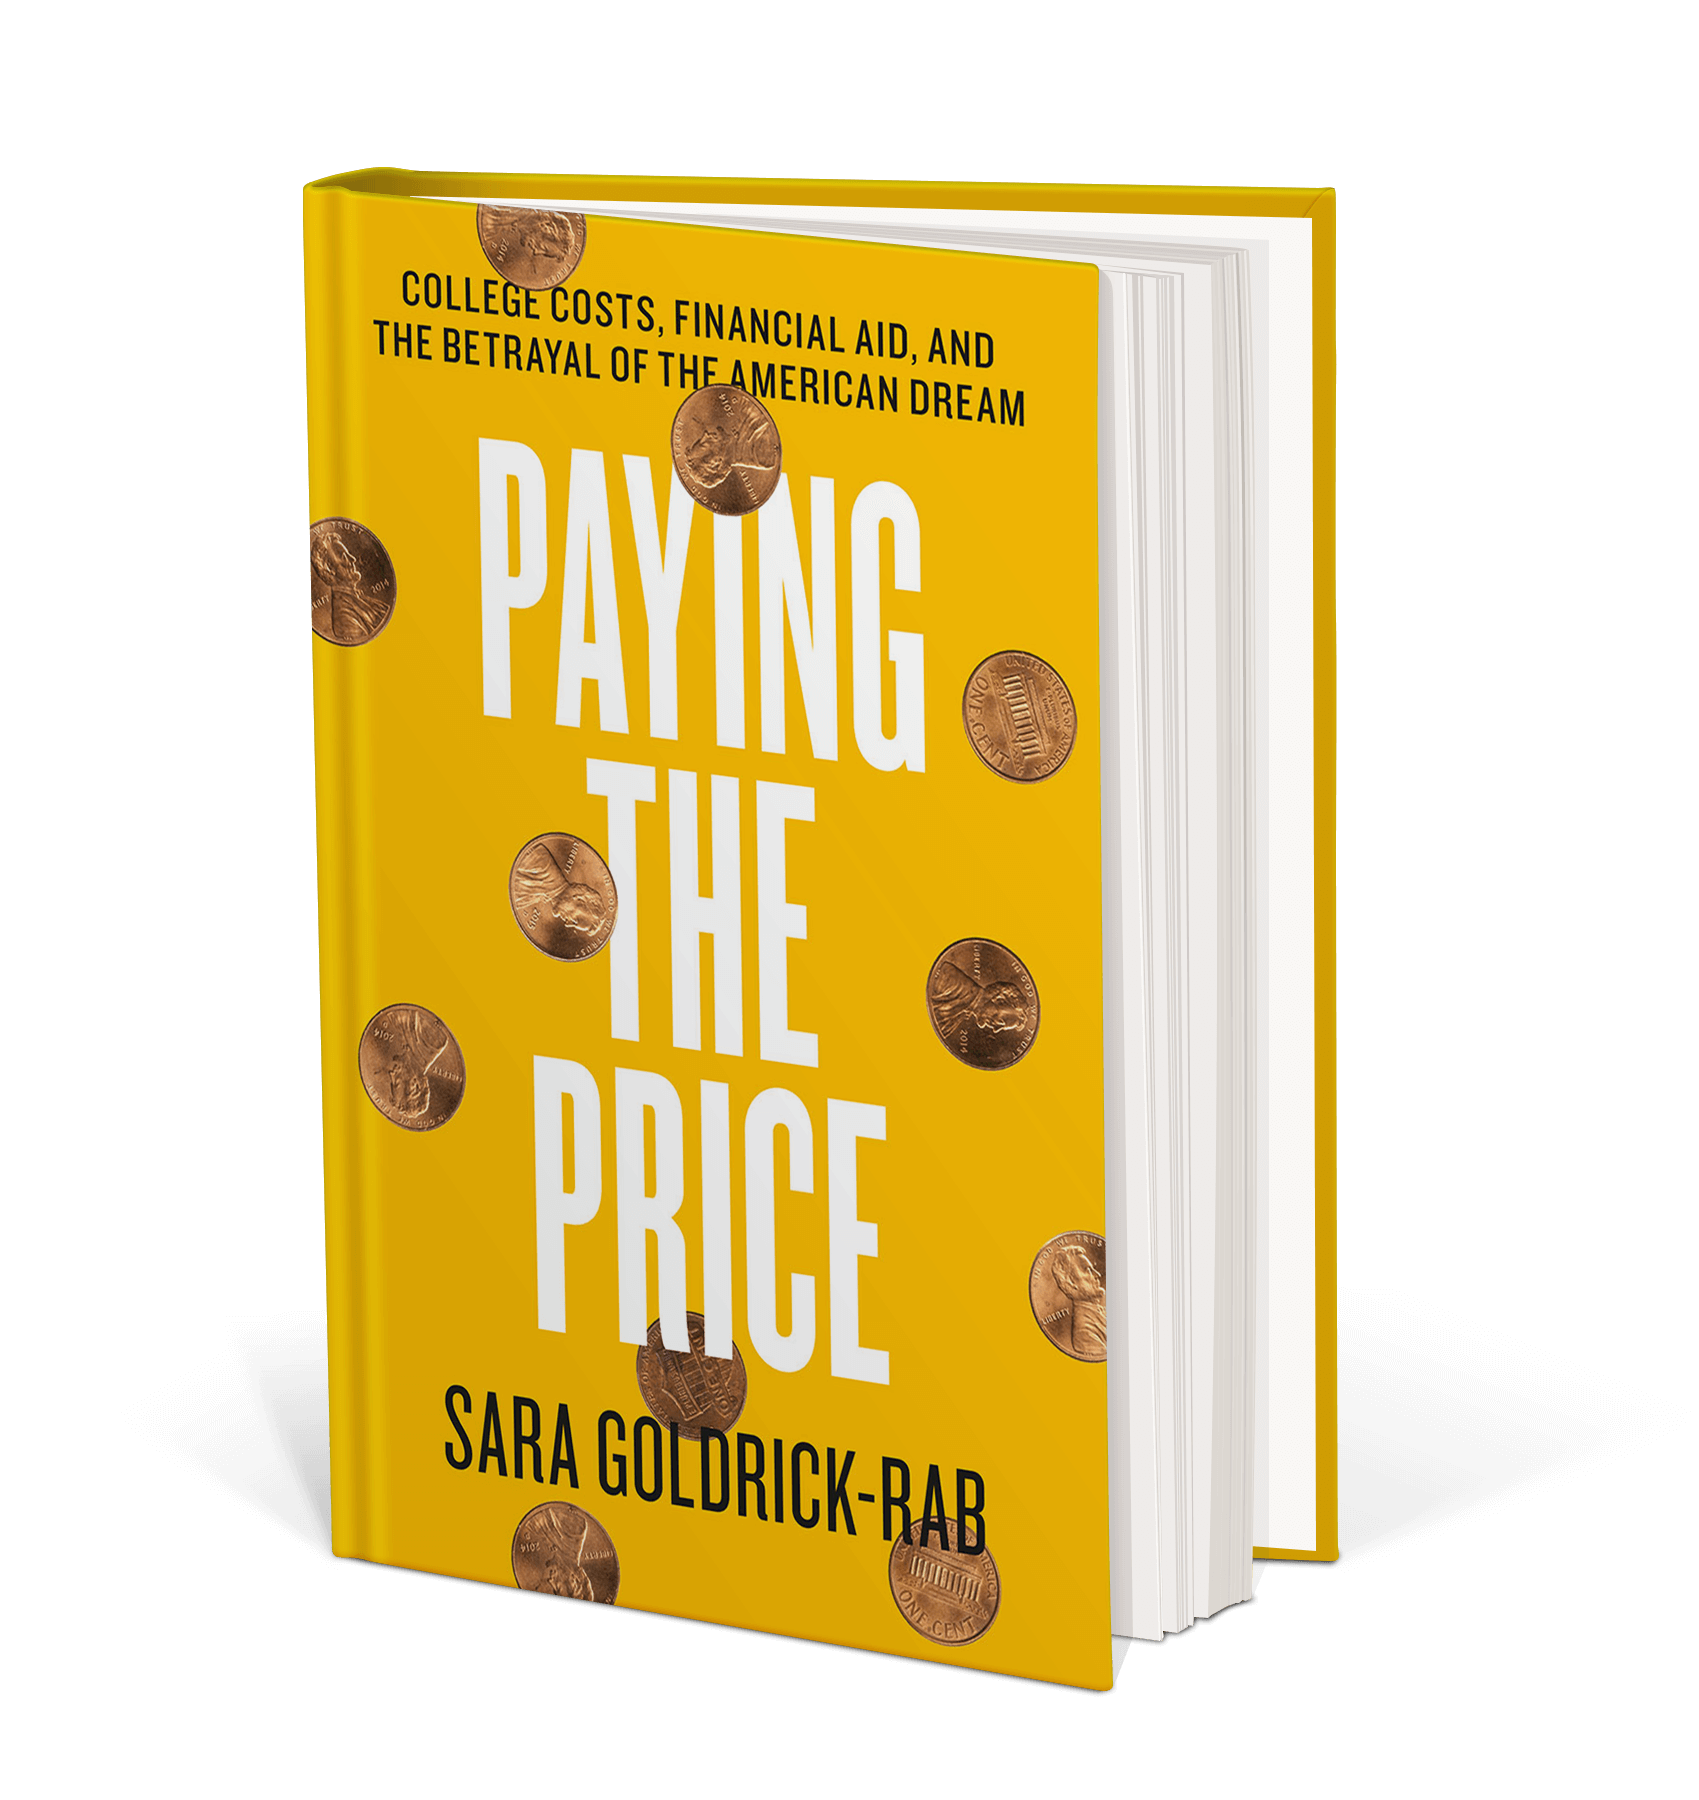 Cover art for Paying the Price : College Costs, Financial Aid, and the Betrayal of the American Dream